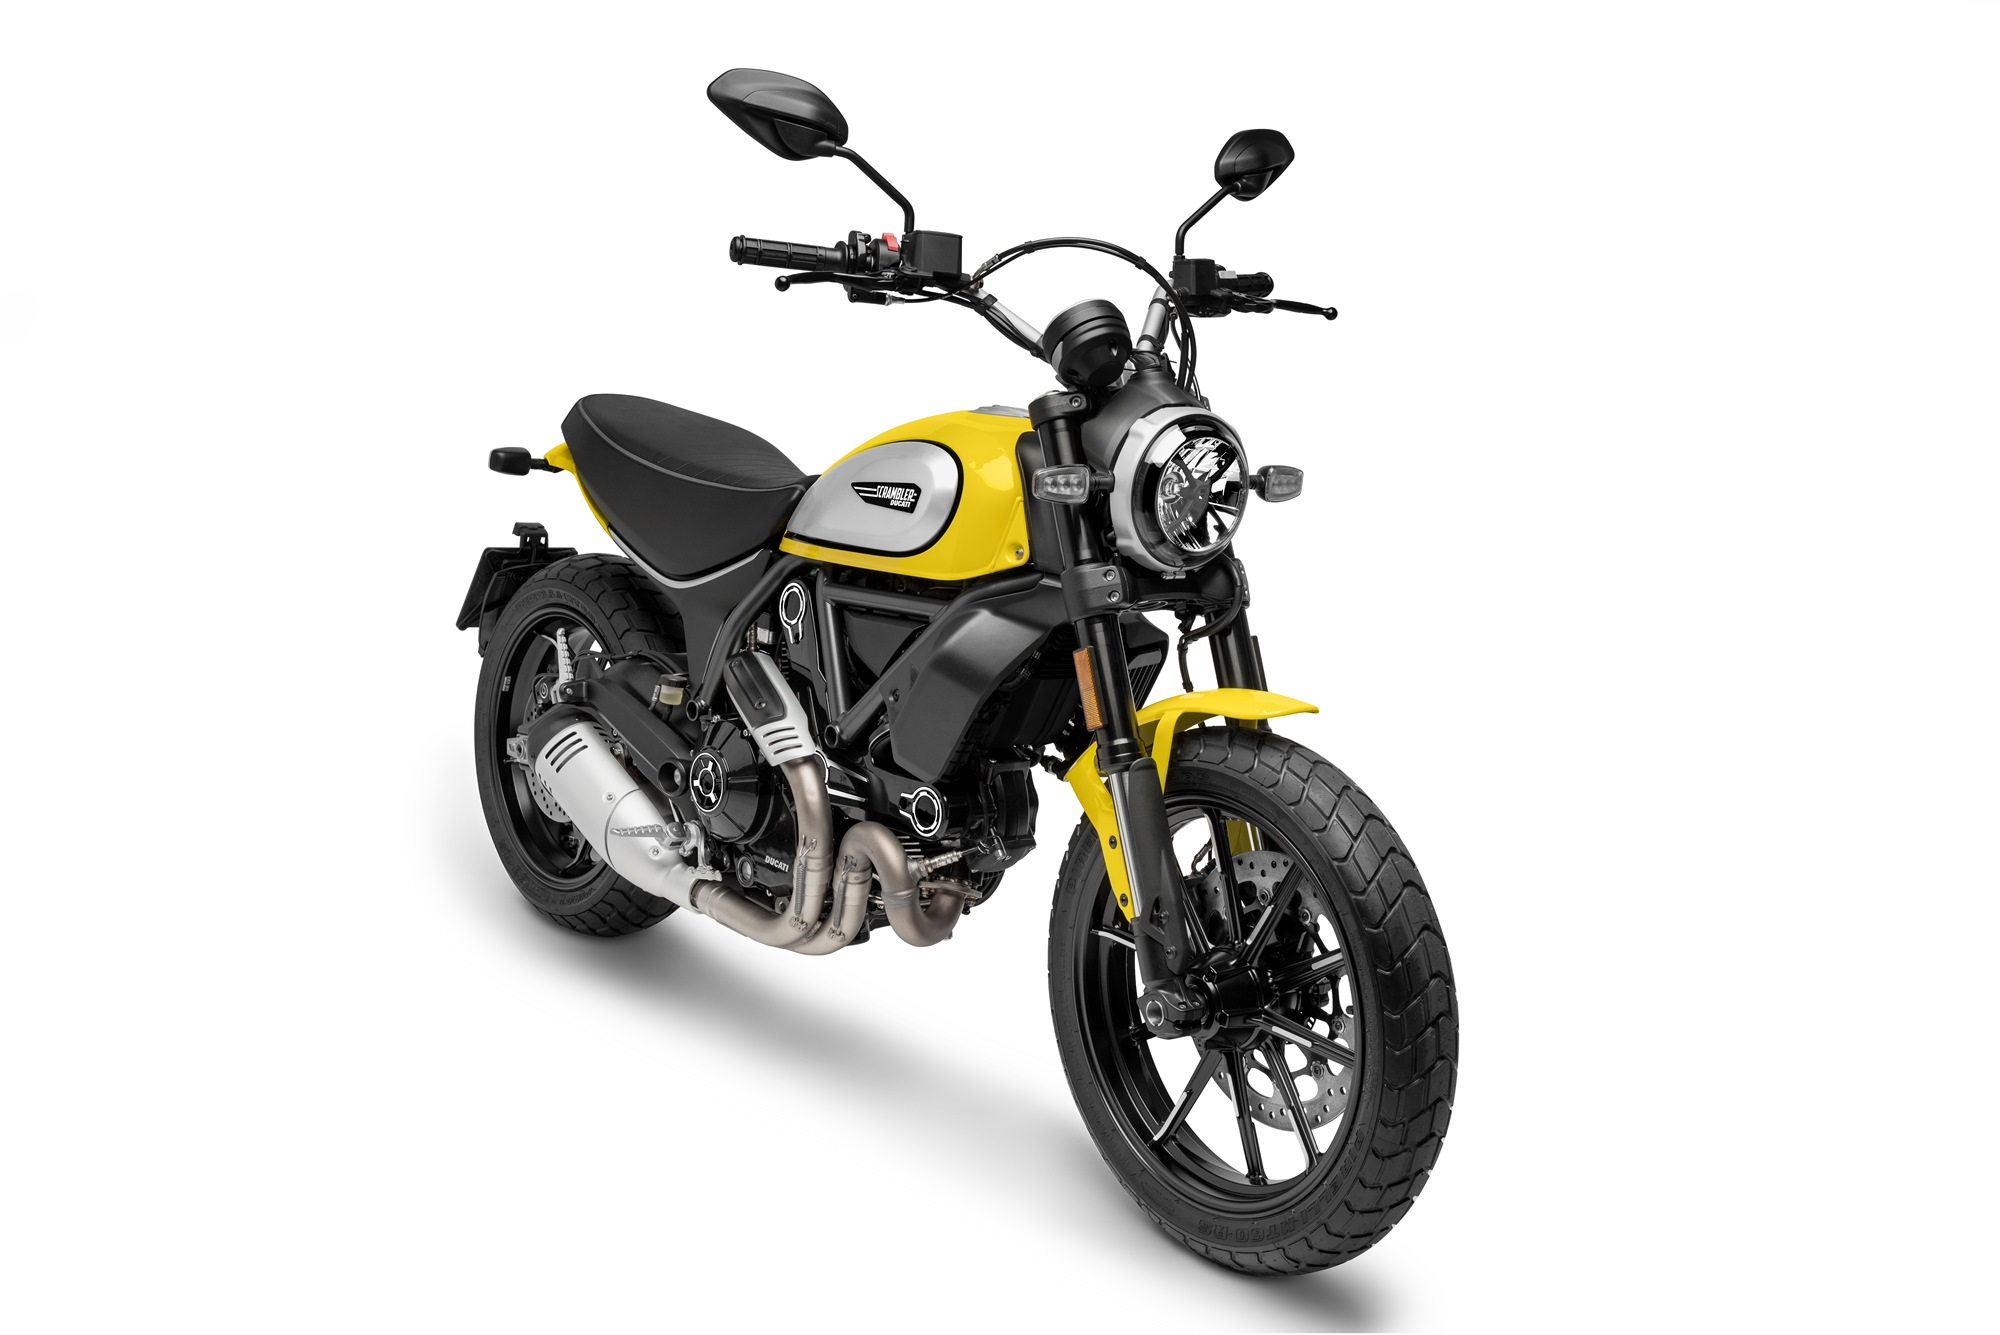 2019 Ducati Scrambler Ambience HD wallpaper